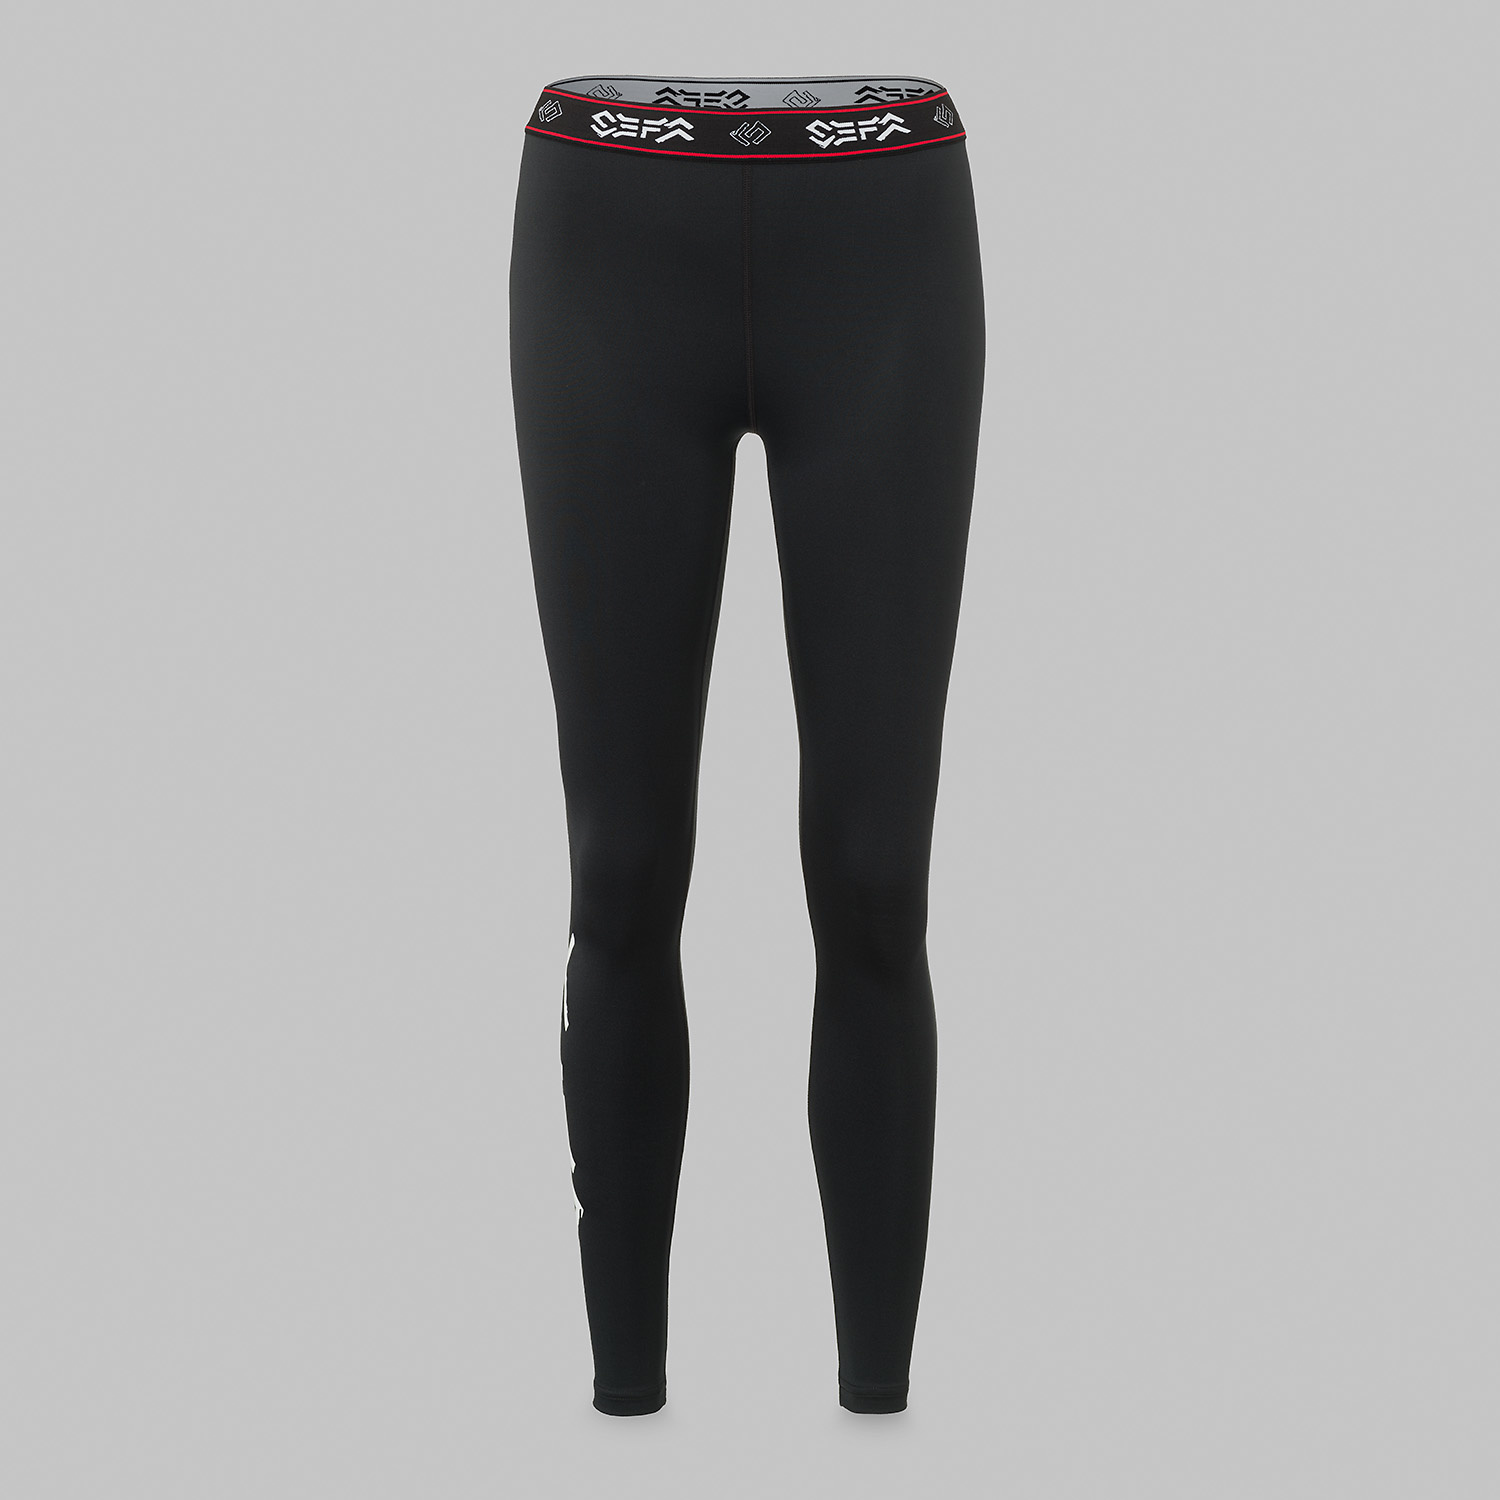 Sefa sport legging black-3